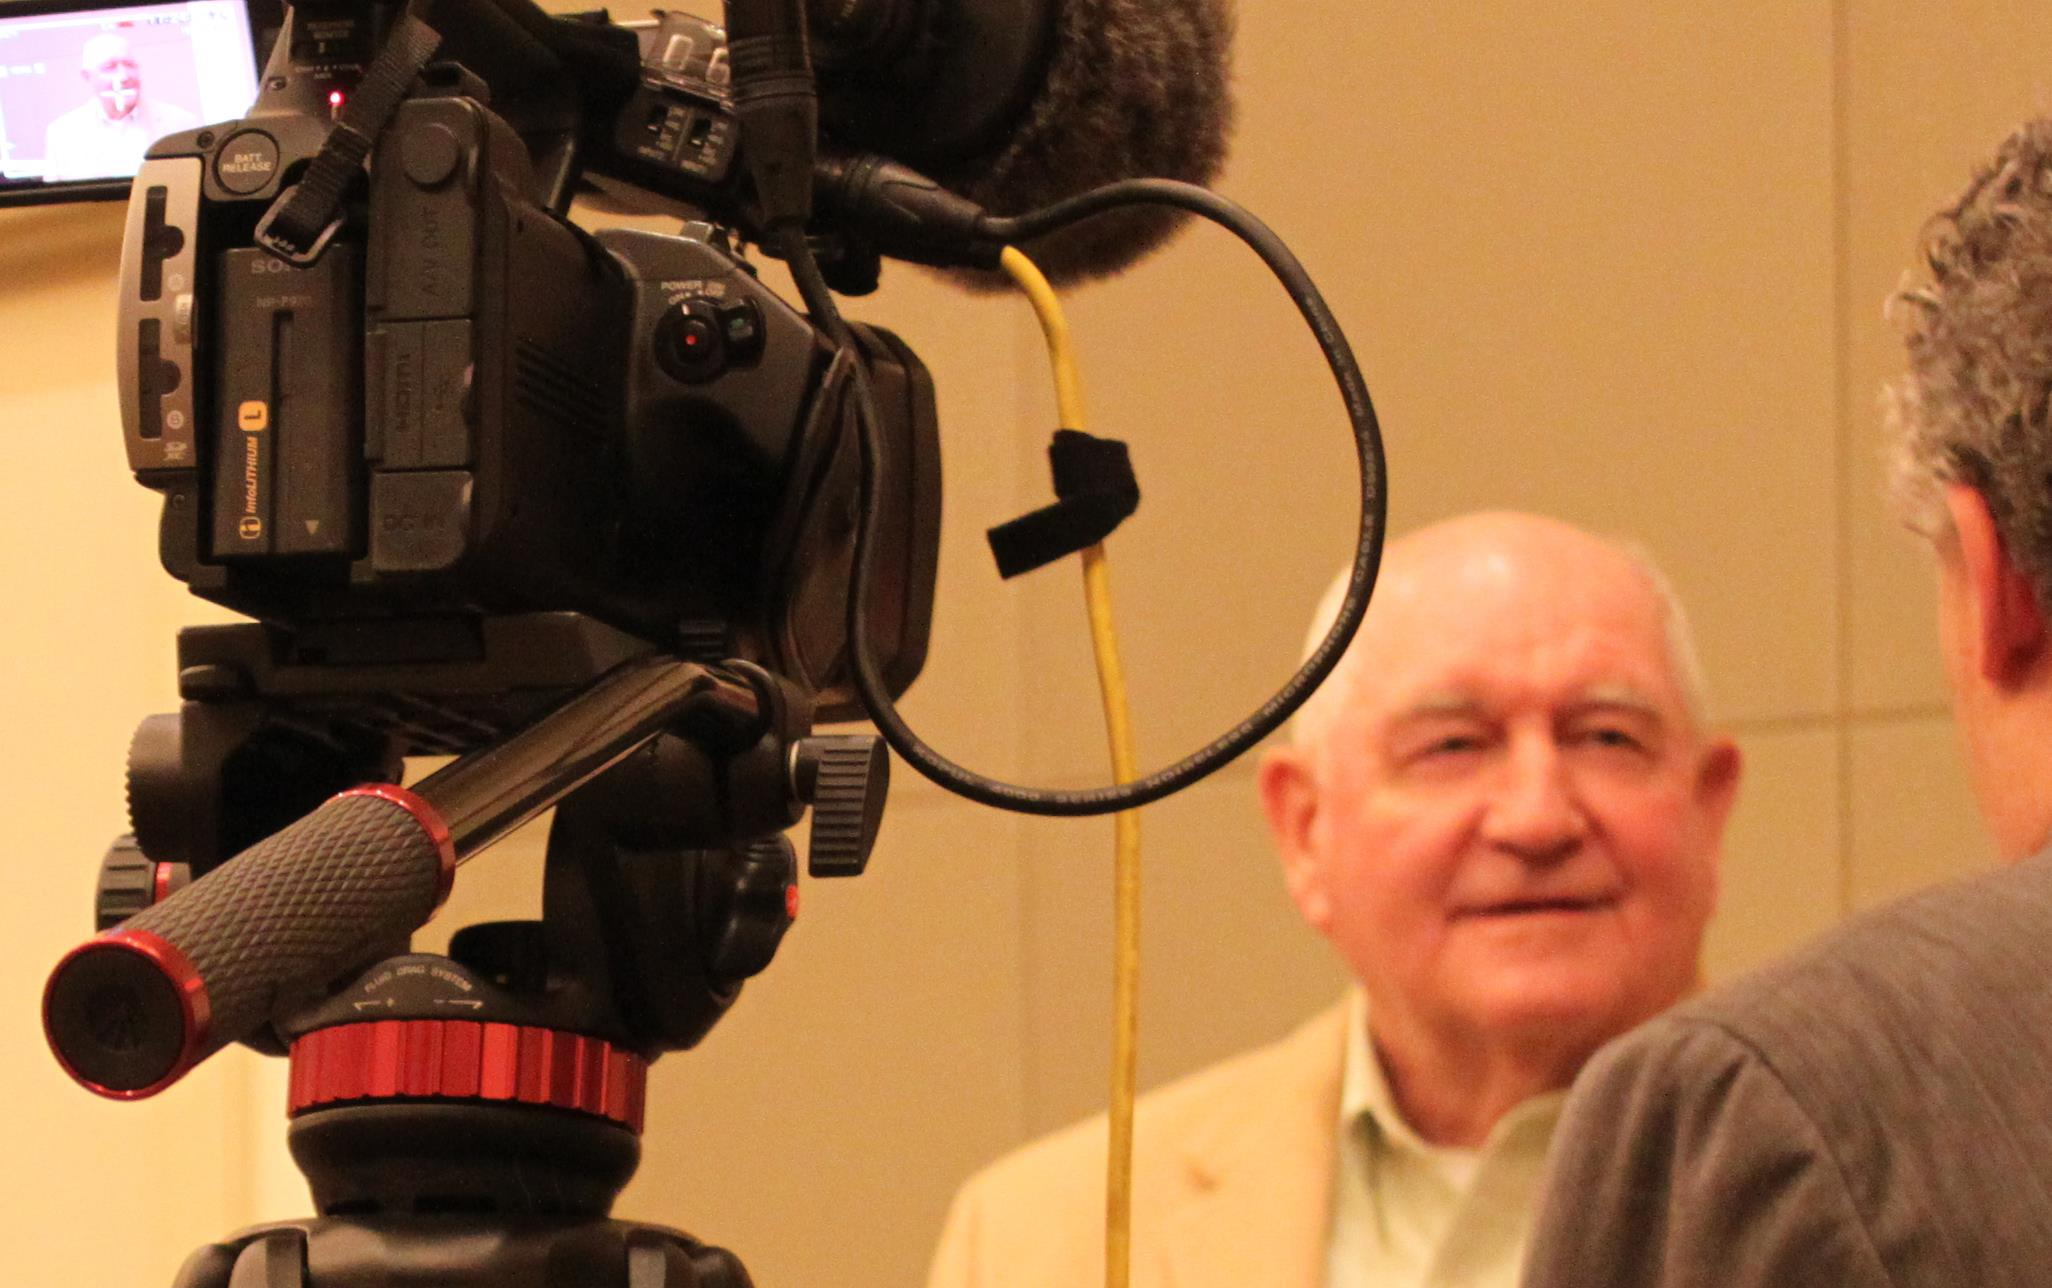 Bald white man stands in front of video camera being interviewed by man wearing a suit